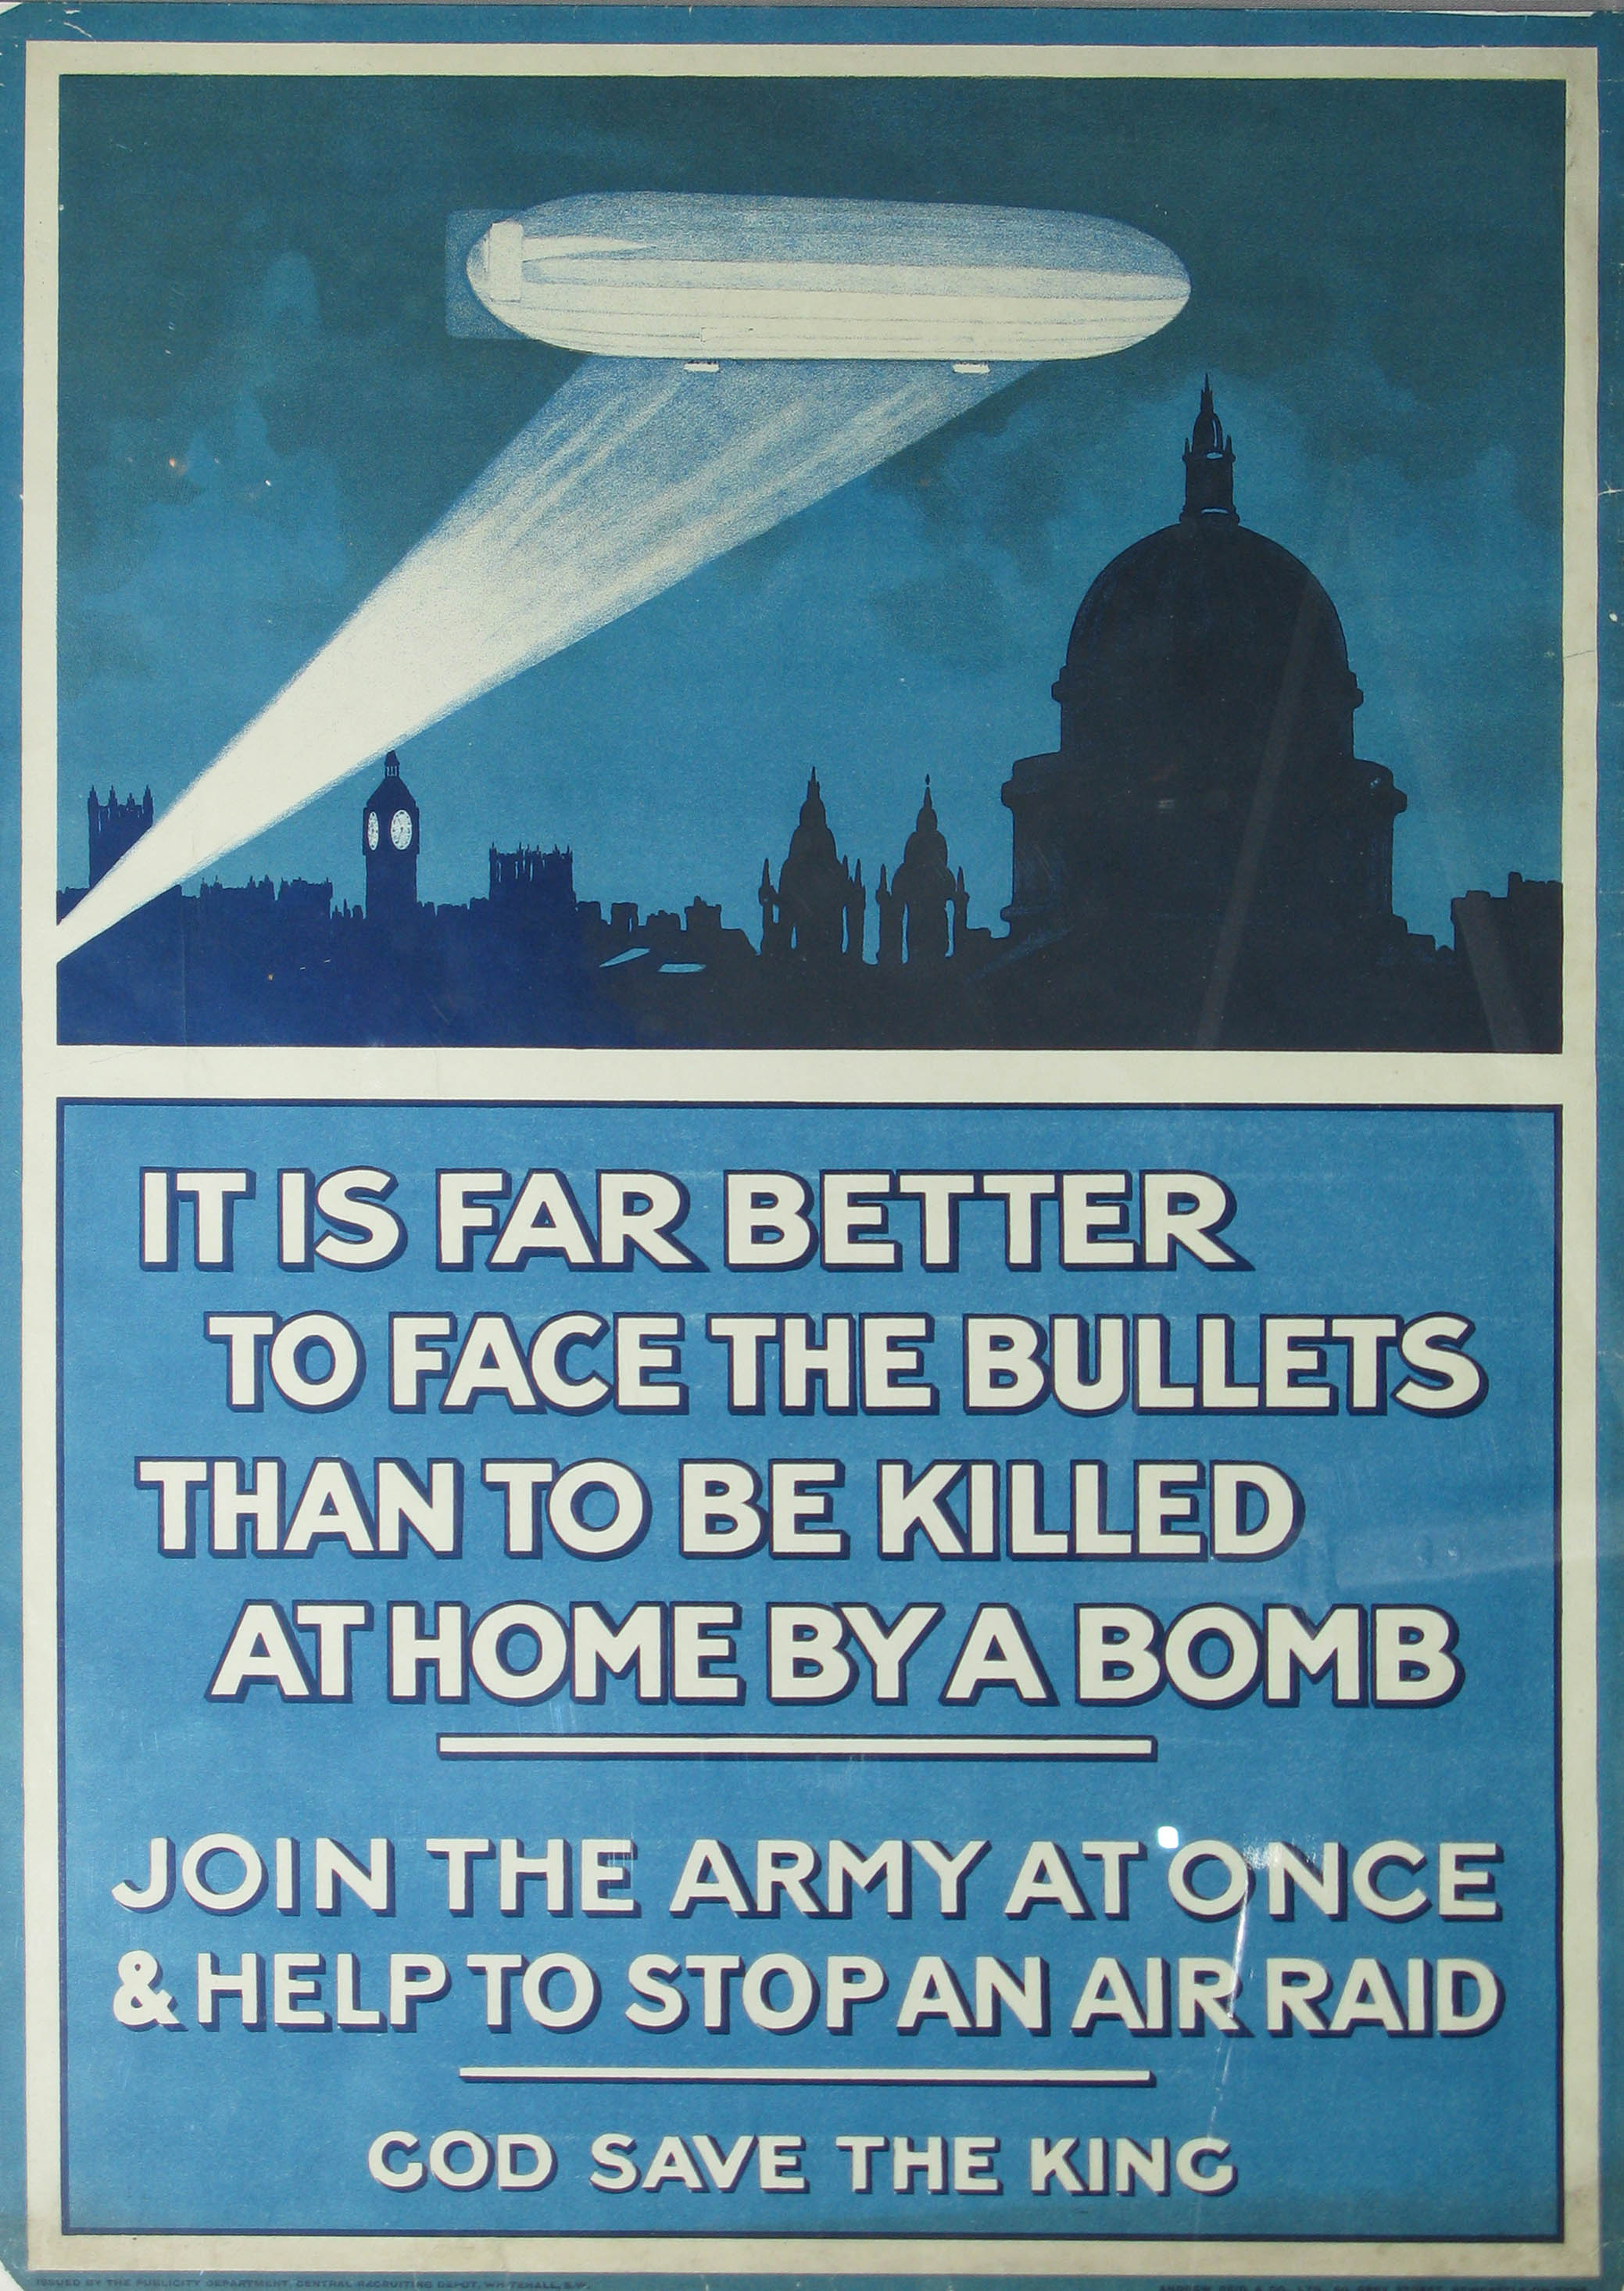 Wwi zeppelin poster - Join the Army. Avoid getting killed by a bomb. Brilliant!